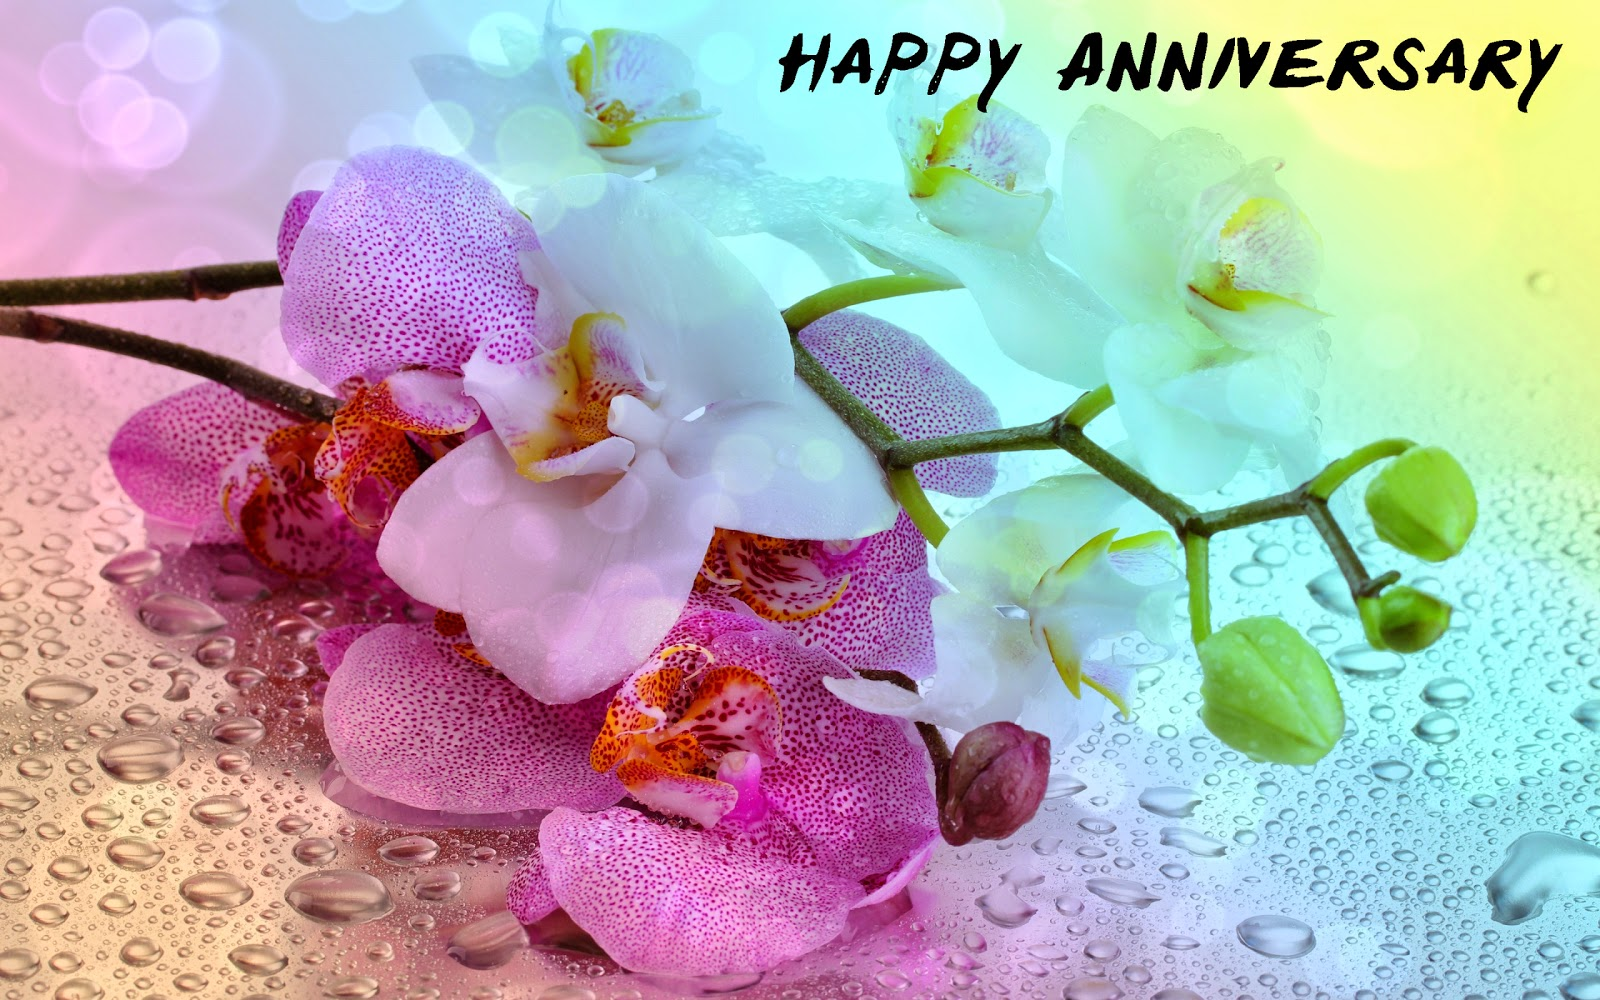 Cute Baby Girl Photos Wallpapers Special Anniversary Hd Images Best Wishes Cards